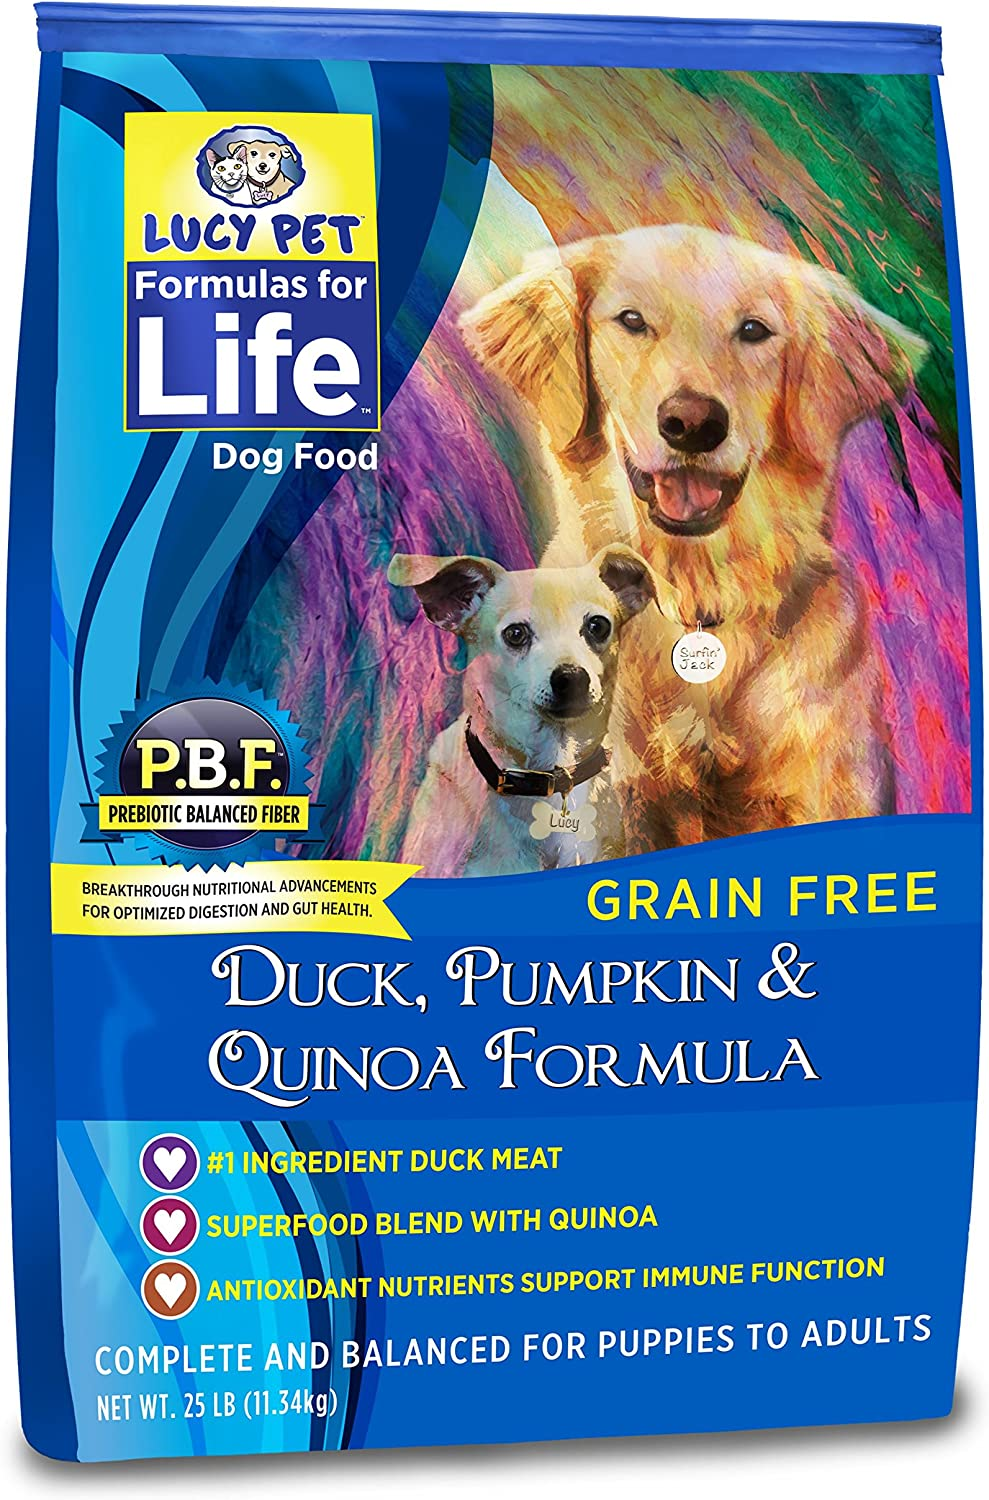 Lucy Pet Formulas for Life Gut Health Dry Dog Food Duck, Pumpkin Quinoa